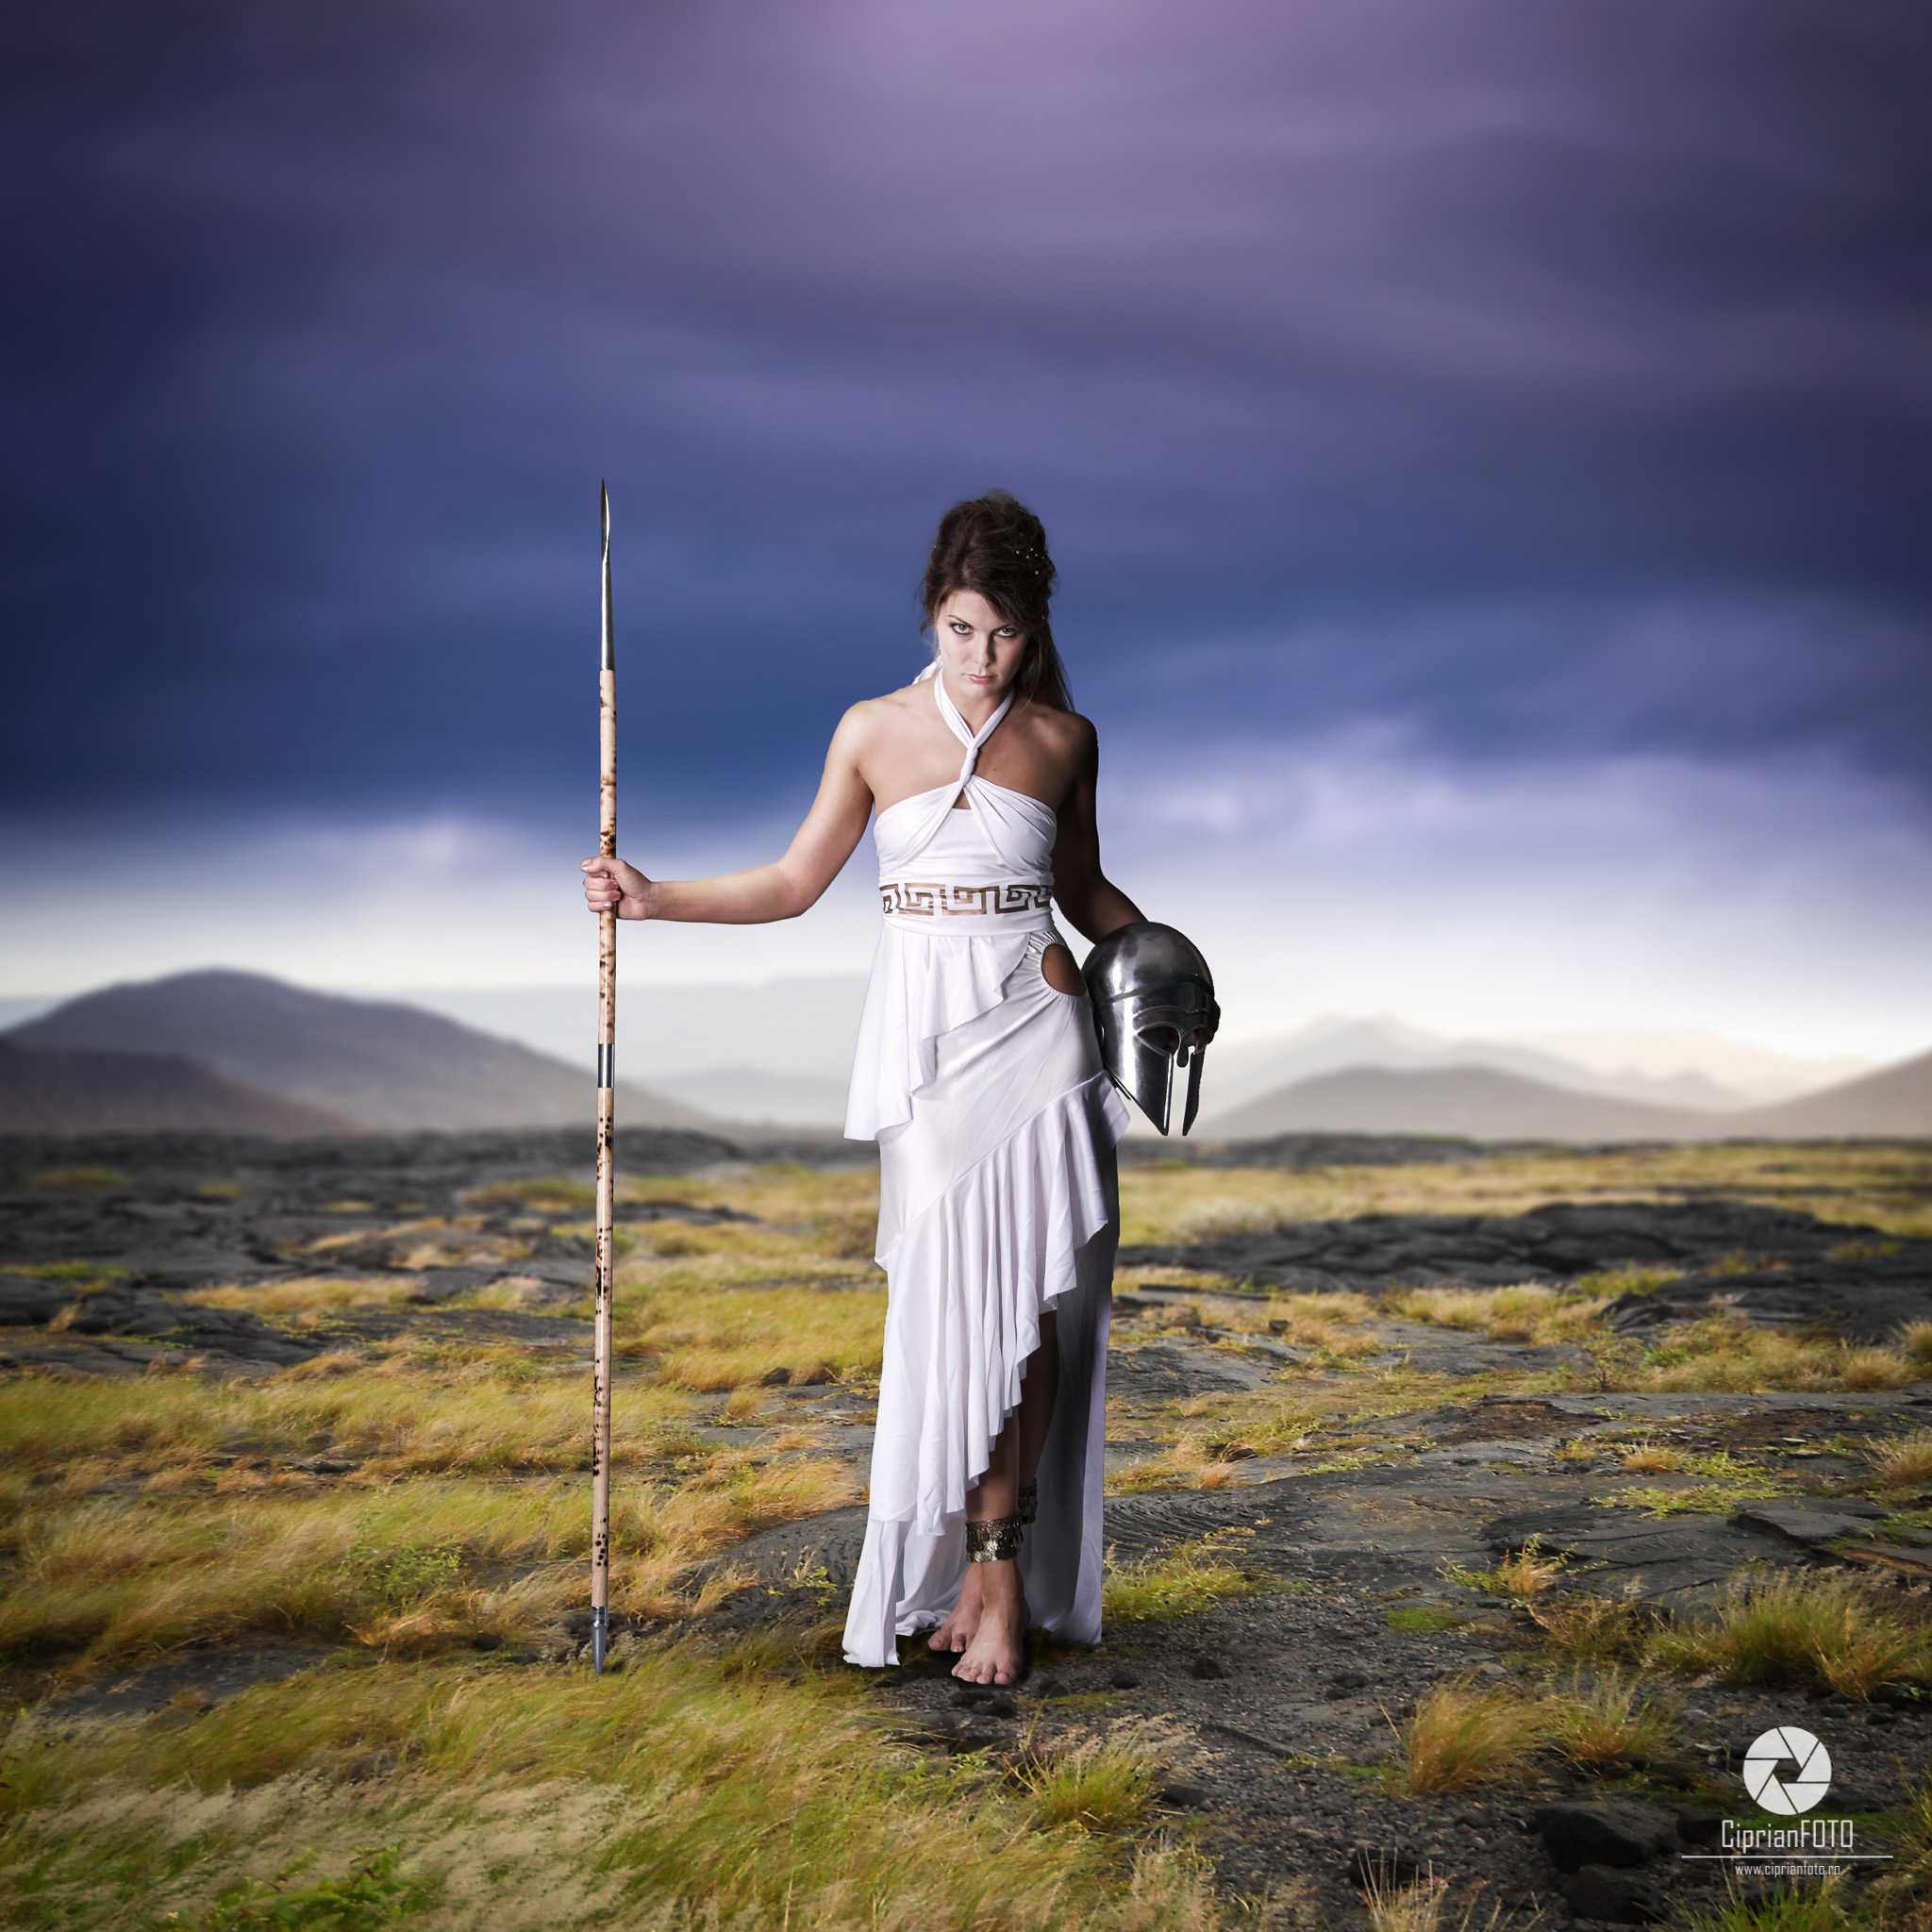 Greek Goddess, Photoshop Manipulation Tutorial, CiprianFOTO